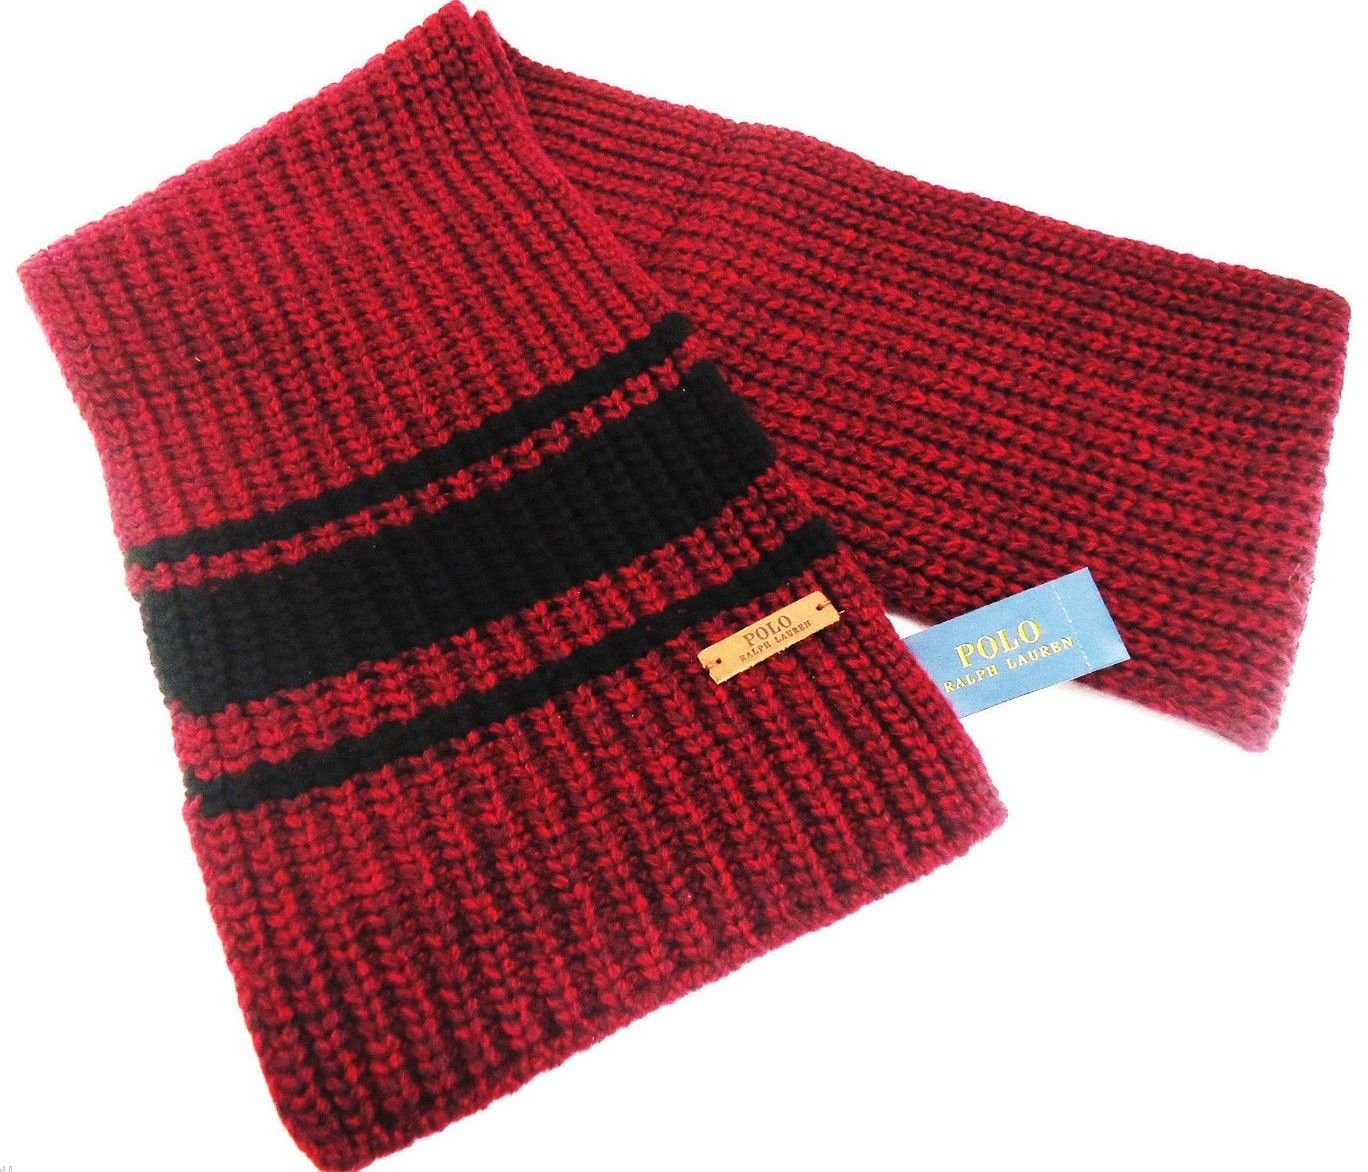 RALPH LAUREN - POLO - STRIPED - MERINO - WOOL - WINTER - SCARF - NEW - BURGUNDY